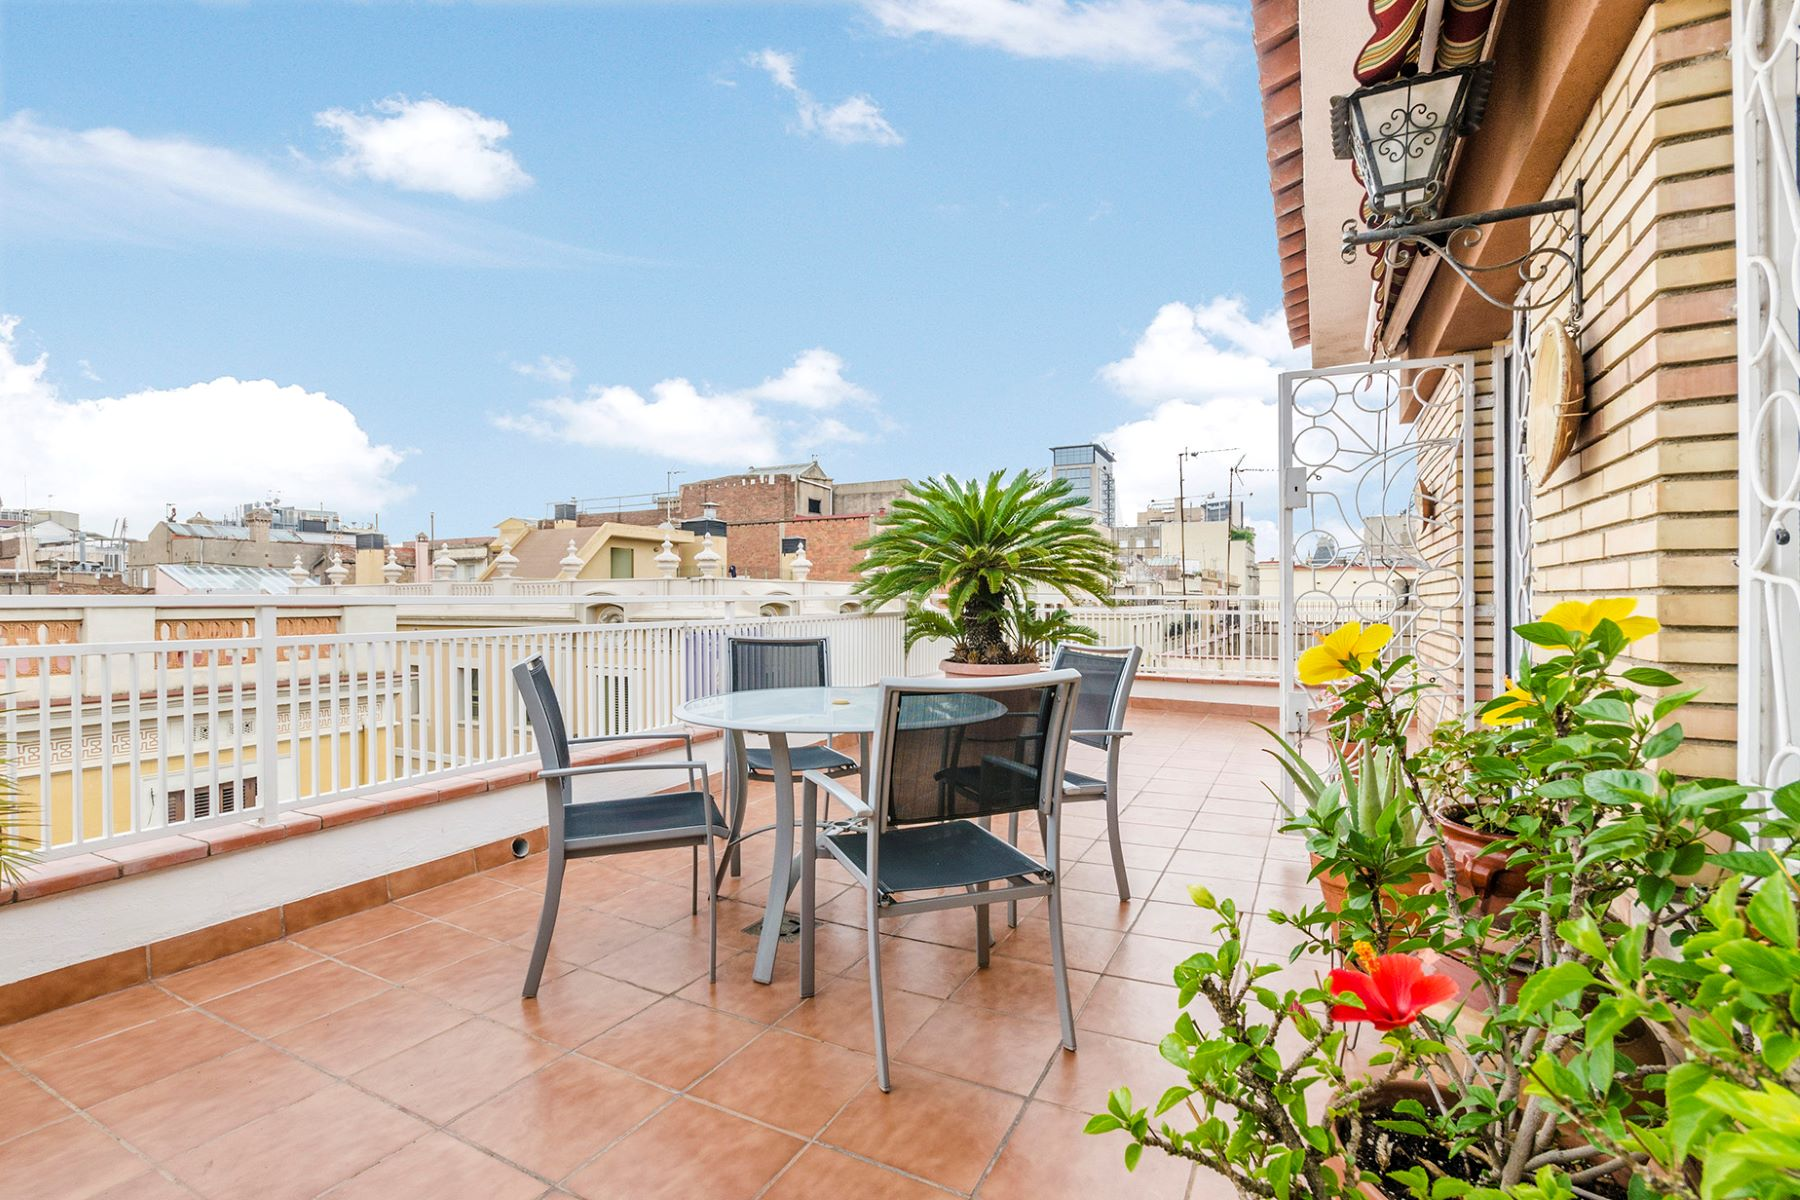 Apartment for Sale at Beautiful penthouse in Gracia, next to Paseo de Gracia Barcelona City, Barcelona, 08007 Spain